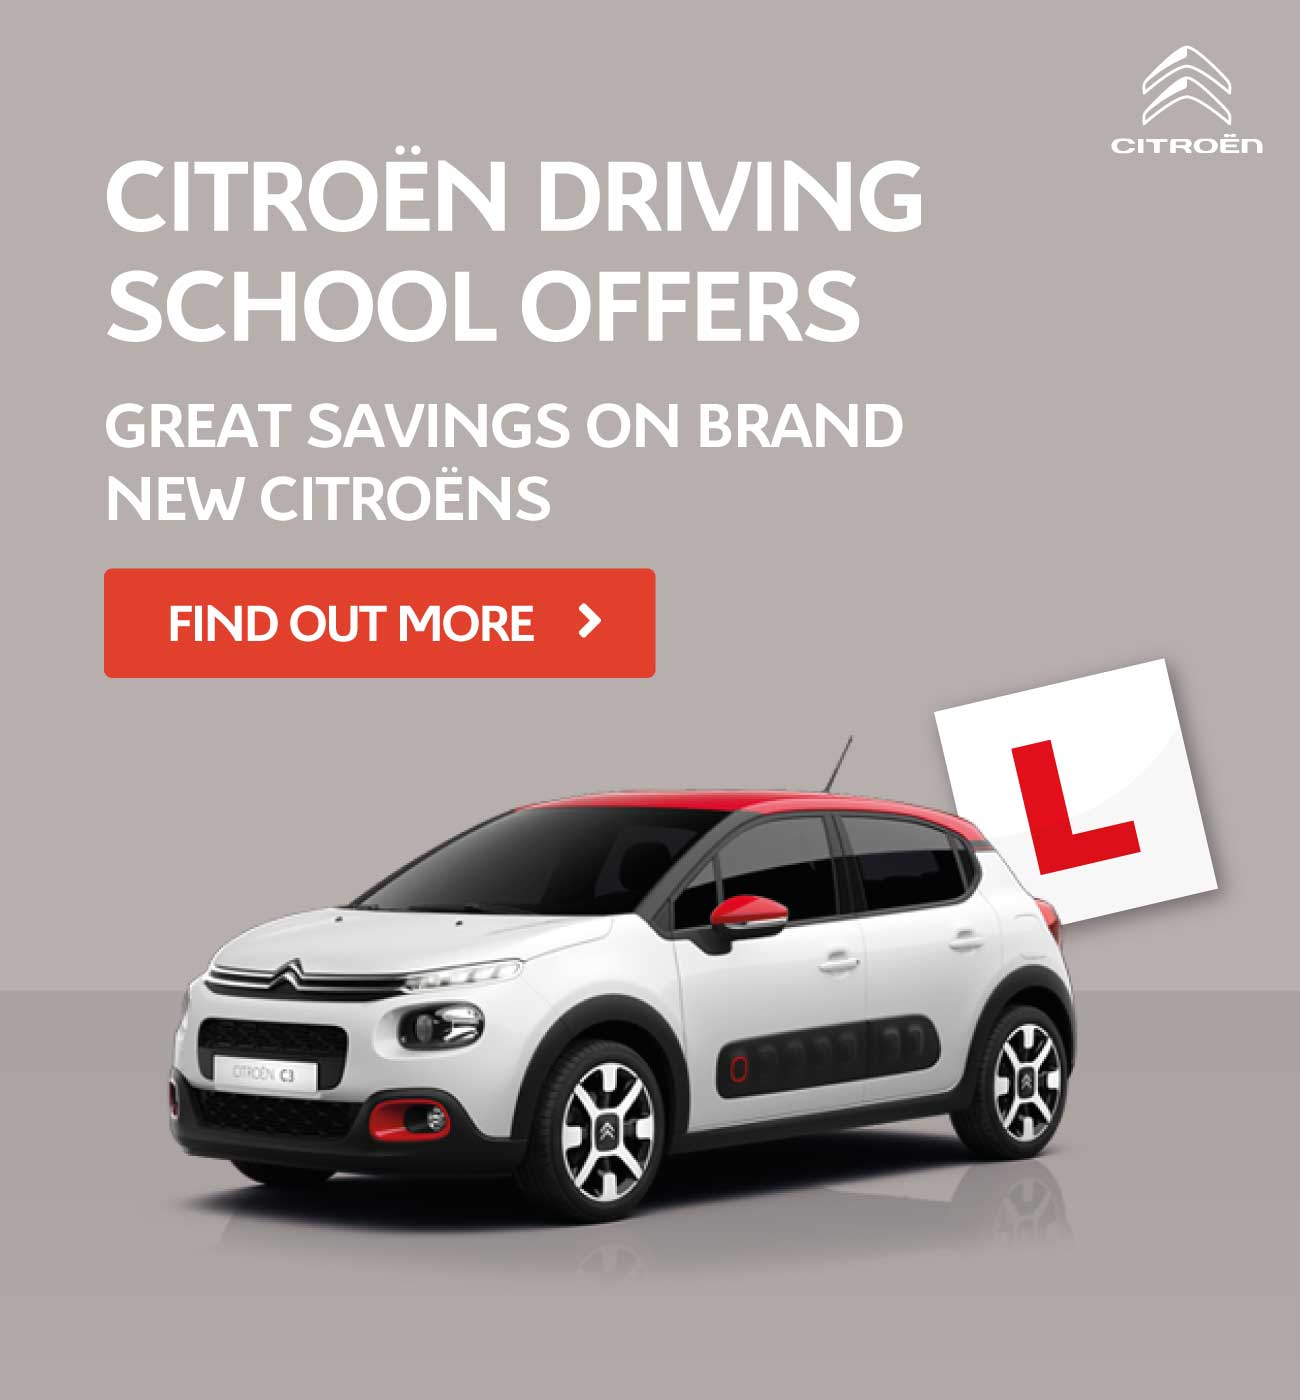 Citroen Driving School